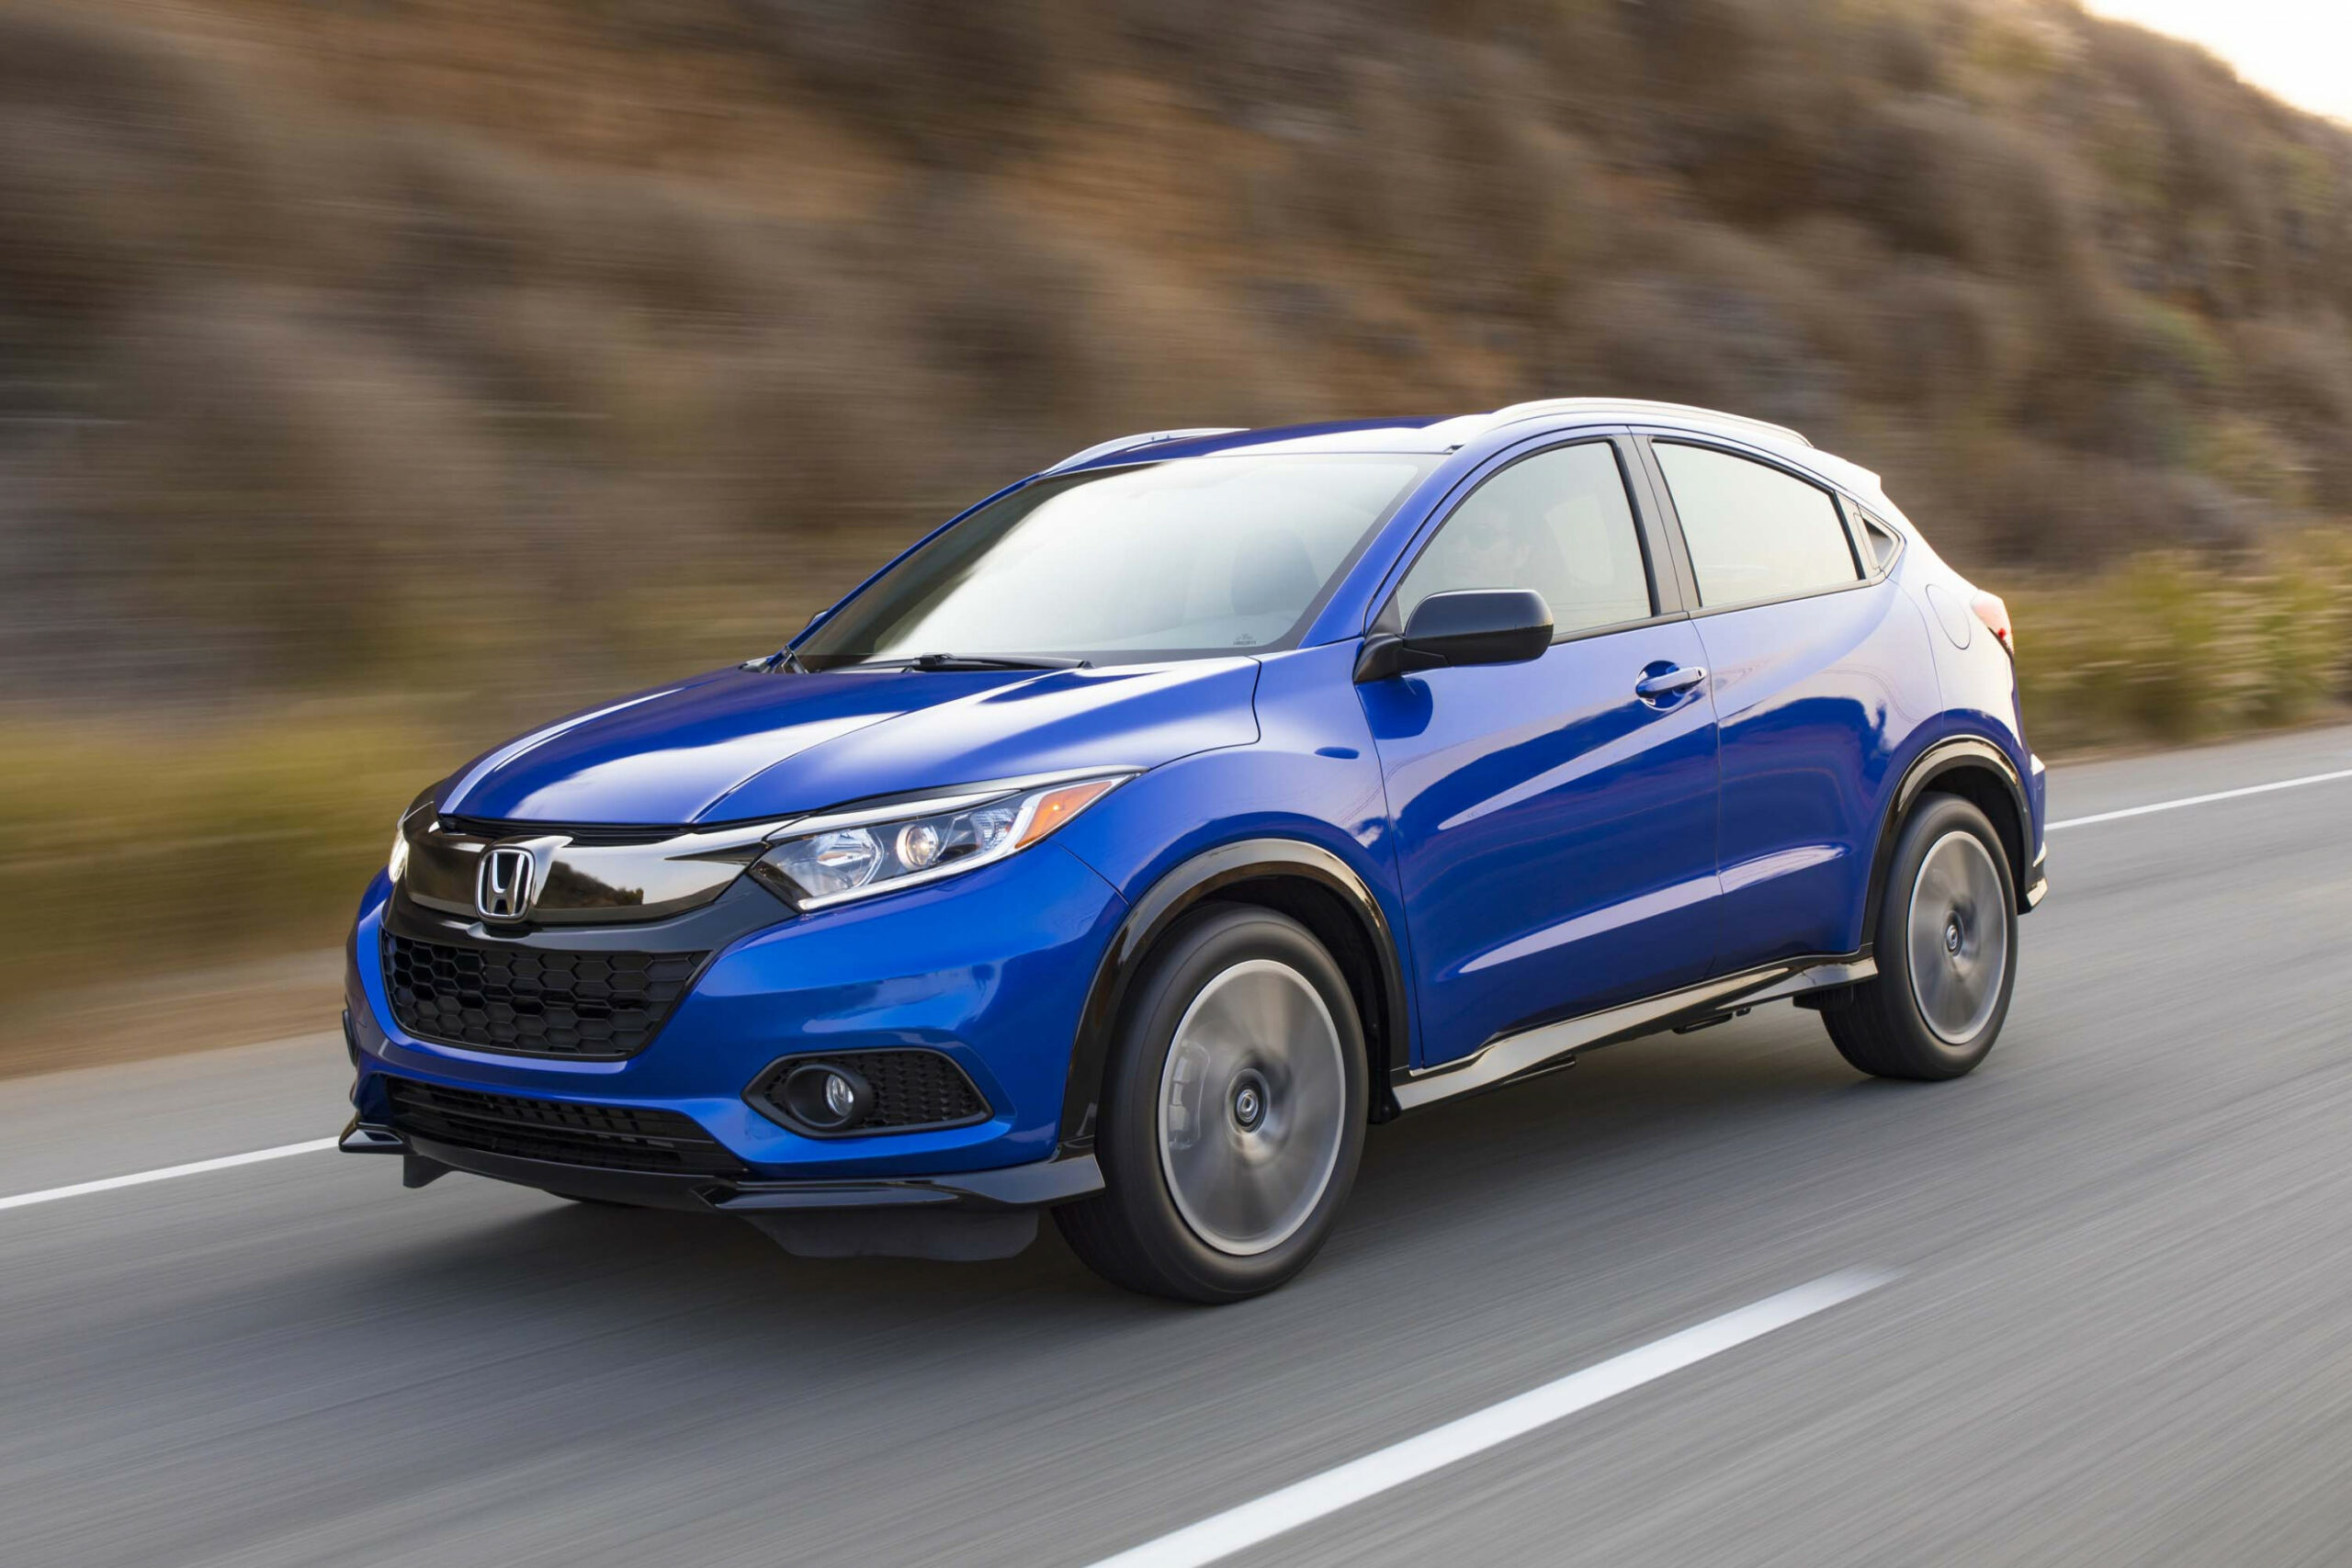 6 Honda HR-V Review, Ratings, Specs, Prices, and Photos - The ..